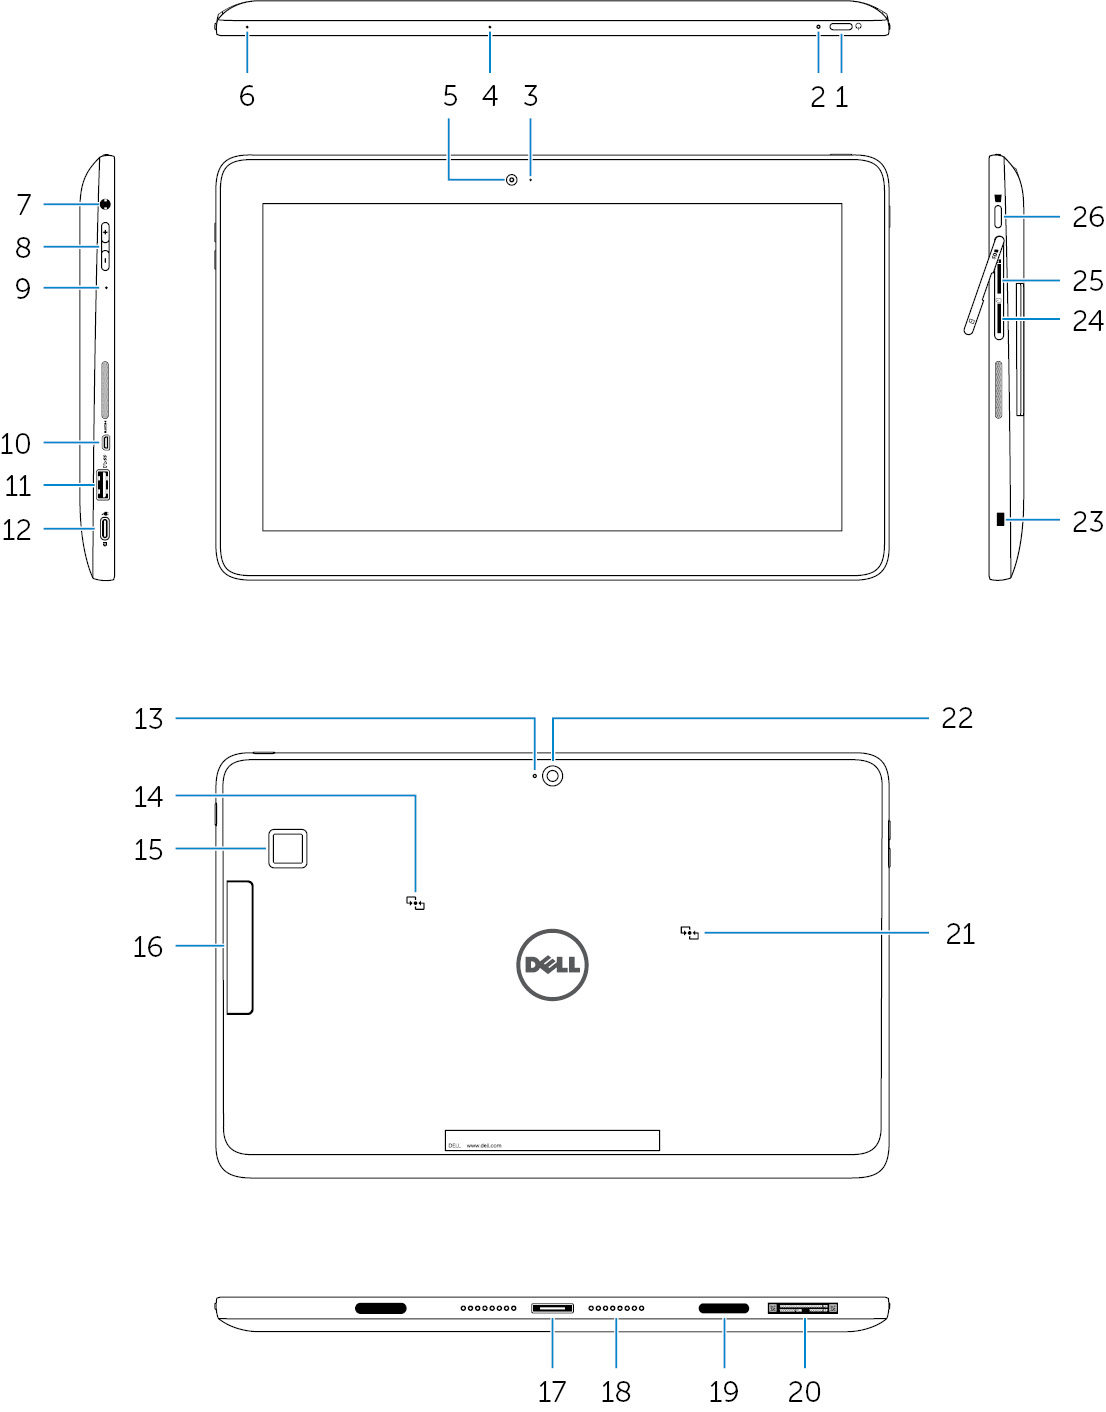 Image: Tablet features